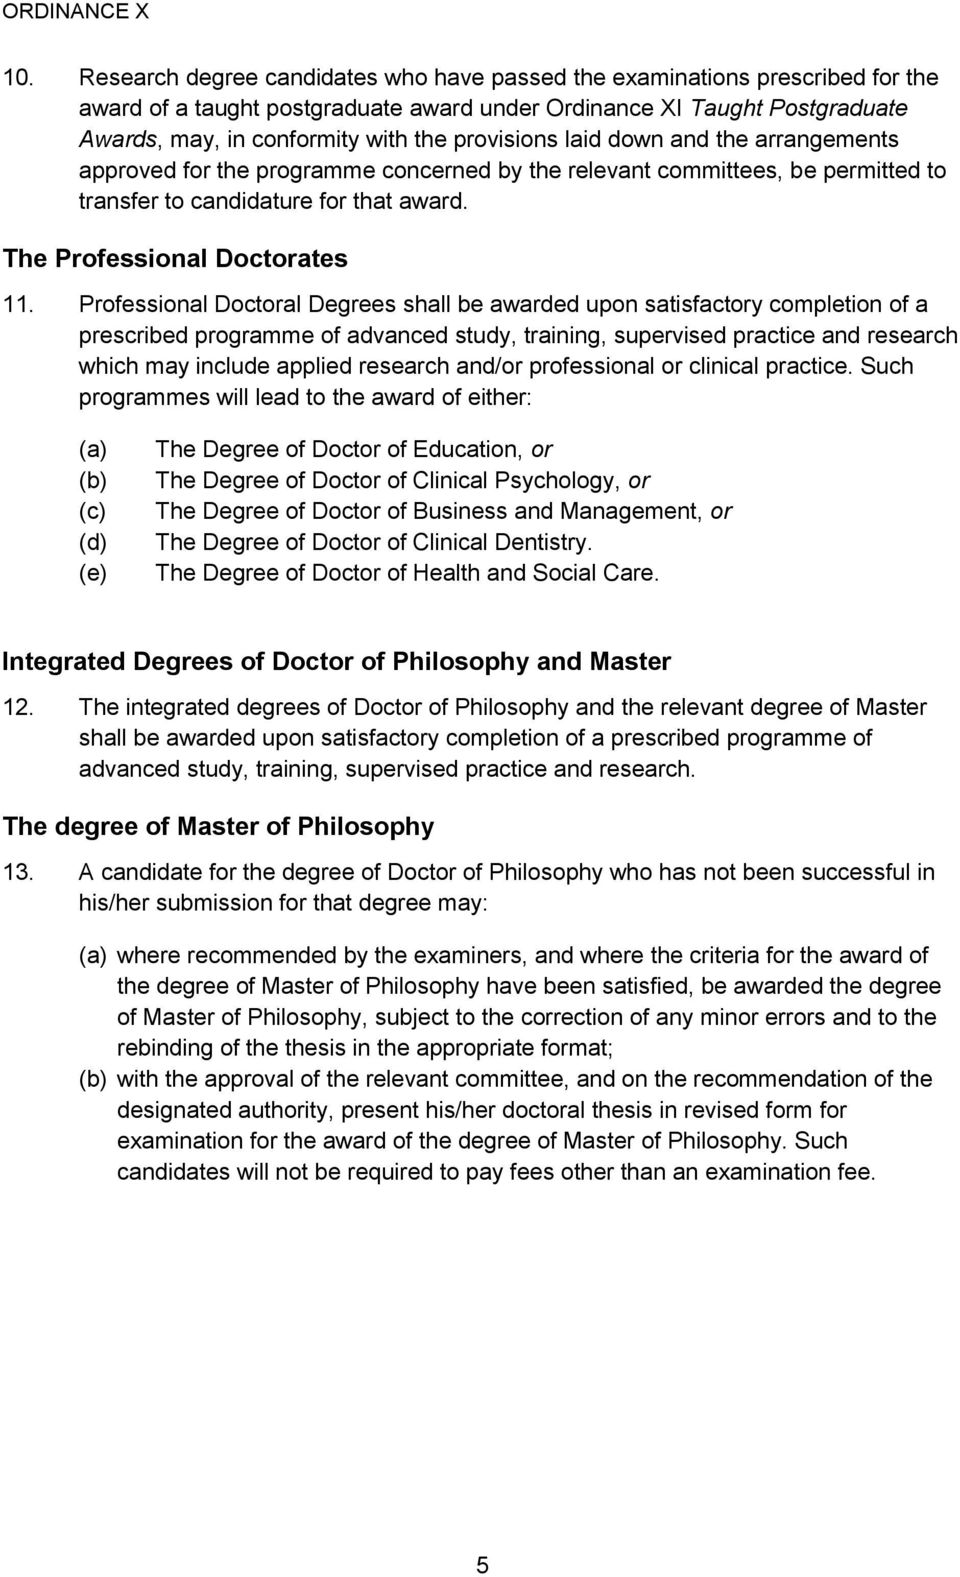 provisions laid down and the arrangements approved for the programme concerned by the relevant committees, be permitted to transfer to candidature for that award. The Professional Doctorates 11.